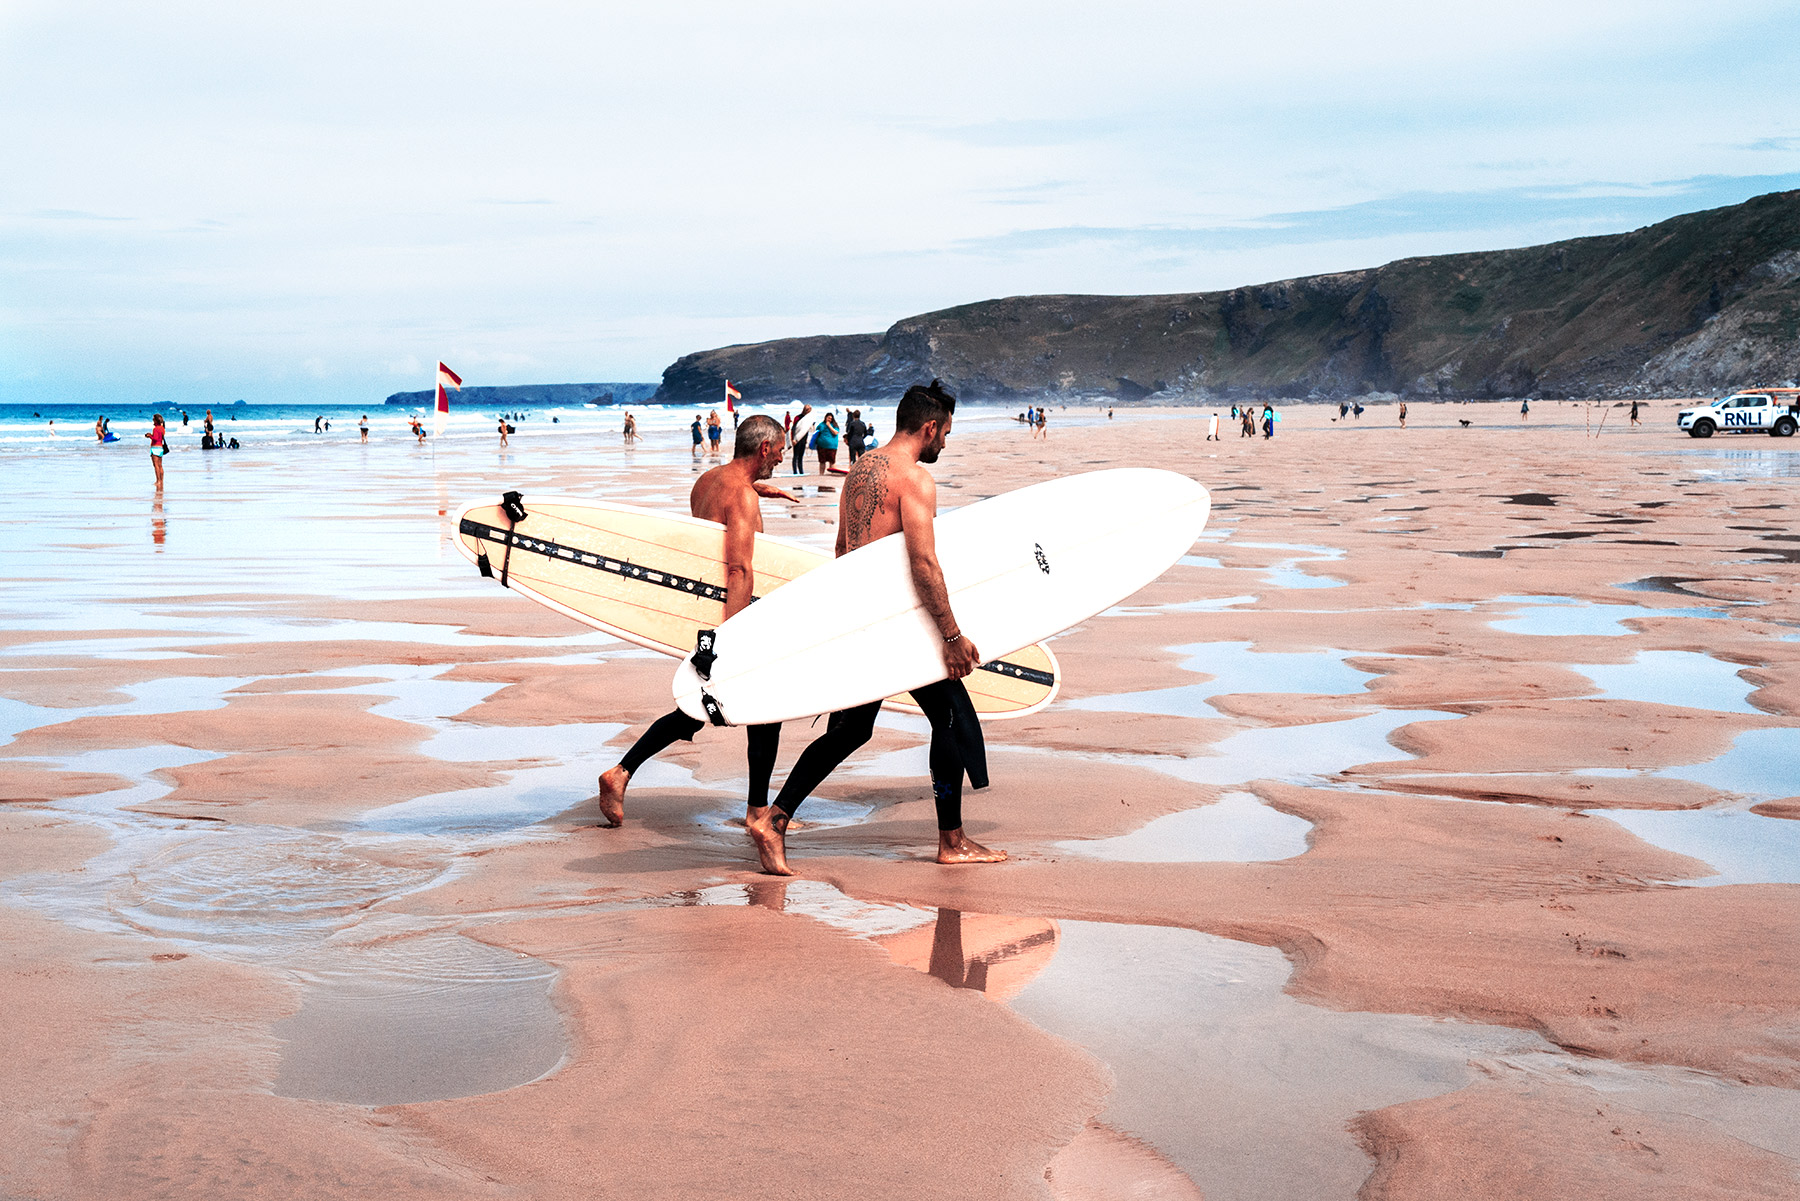 Good Boy Wolf Photographer, filmic portrait, two surfers walking on wet sand